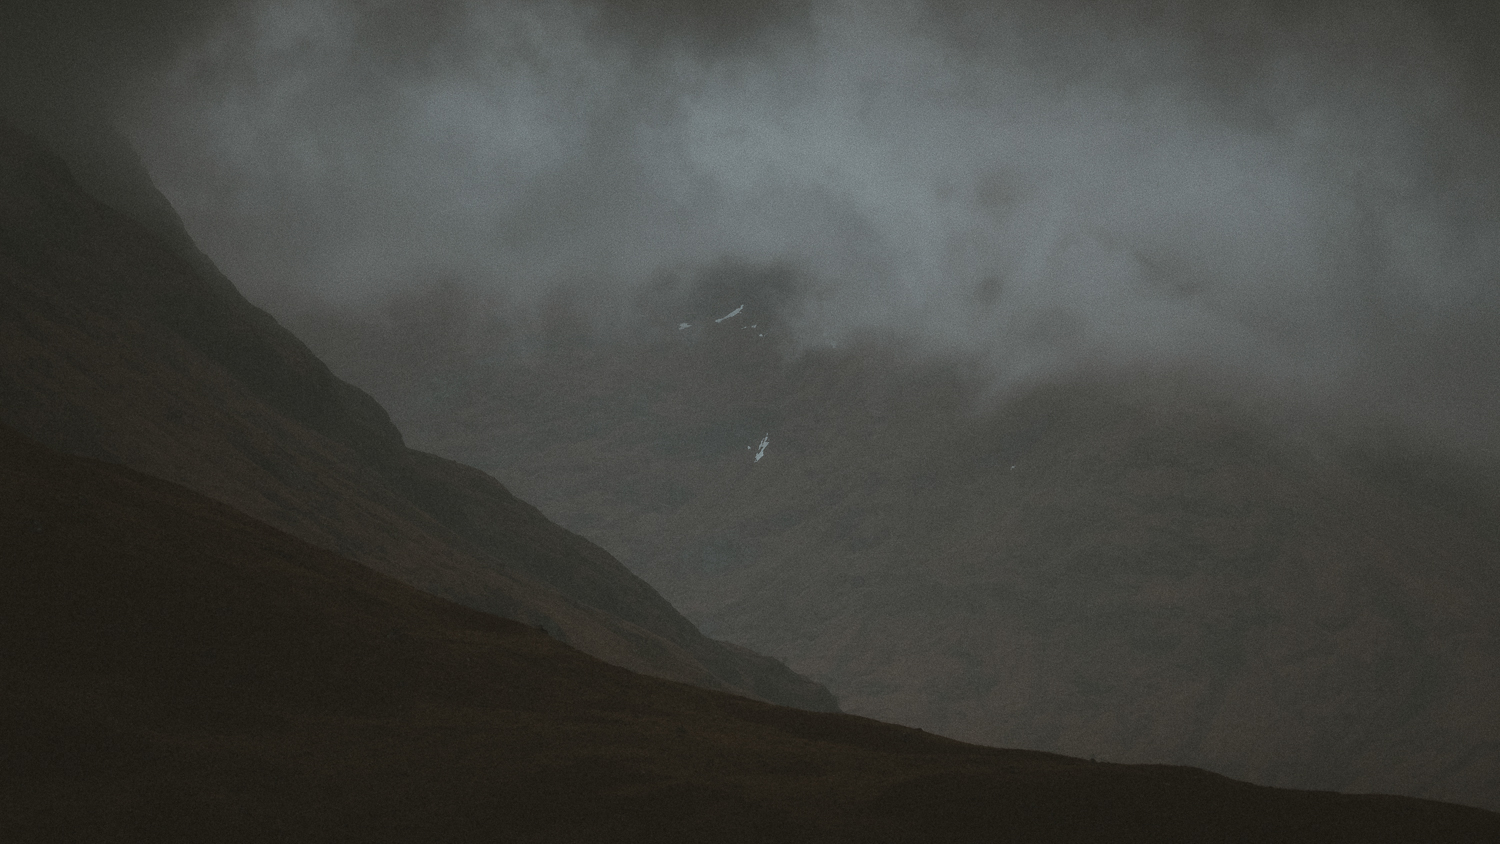 0015-workshop-glencoe-skye-20180508090651.jpg